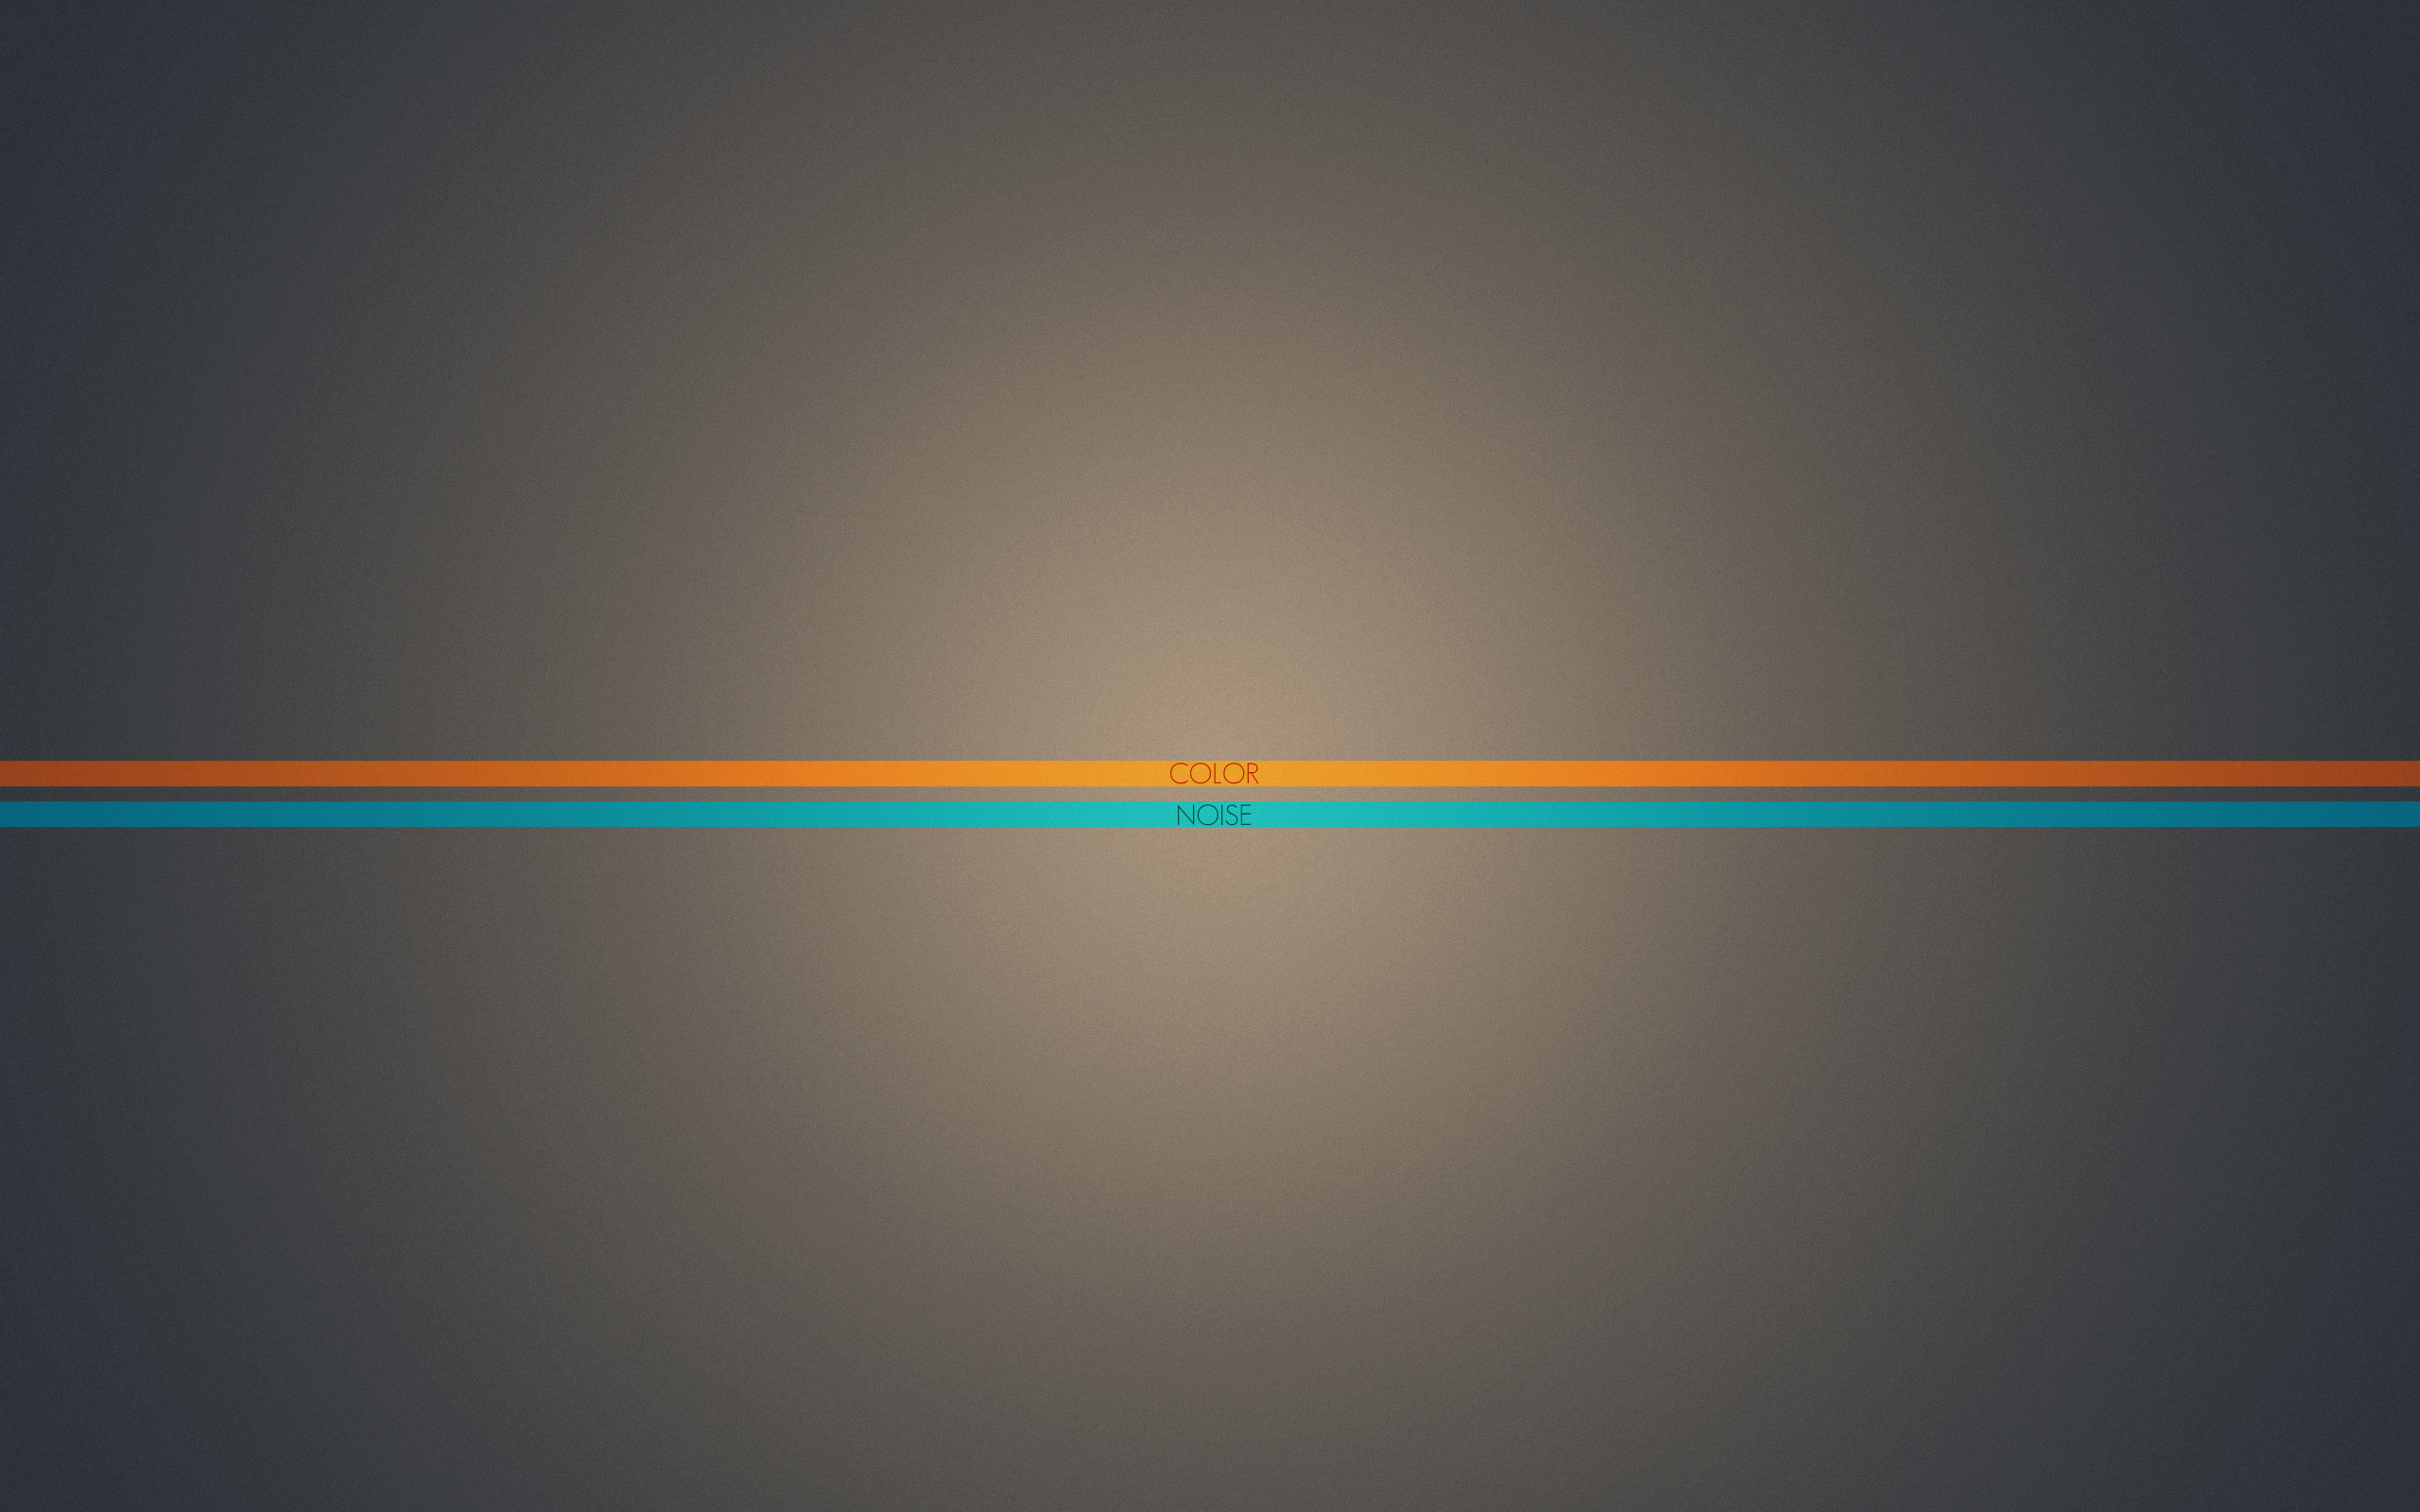 Blue and orange stripes Wallpaper 9555 2560x1600